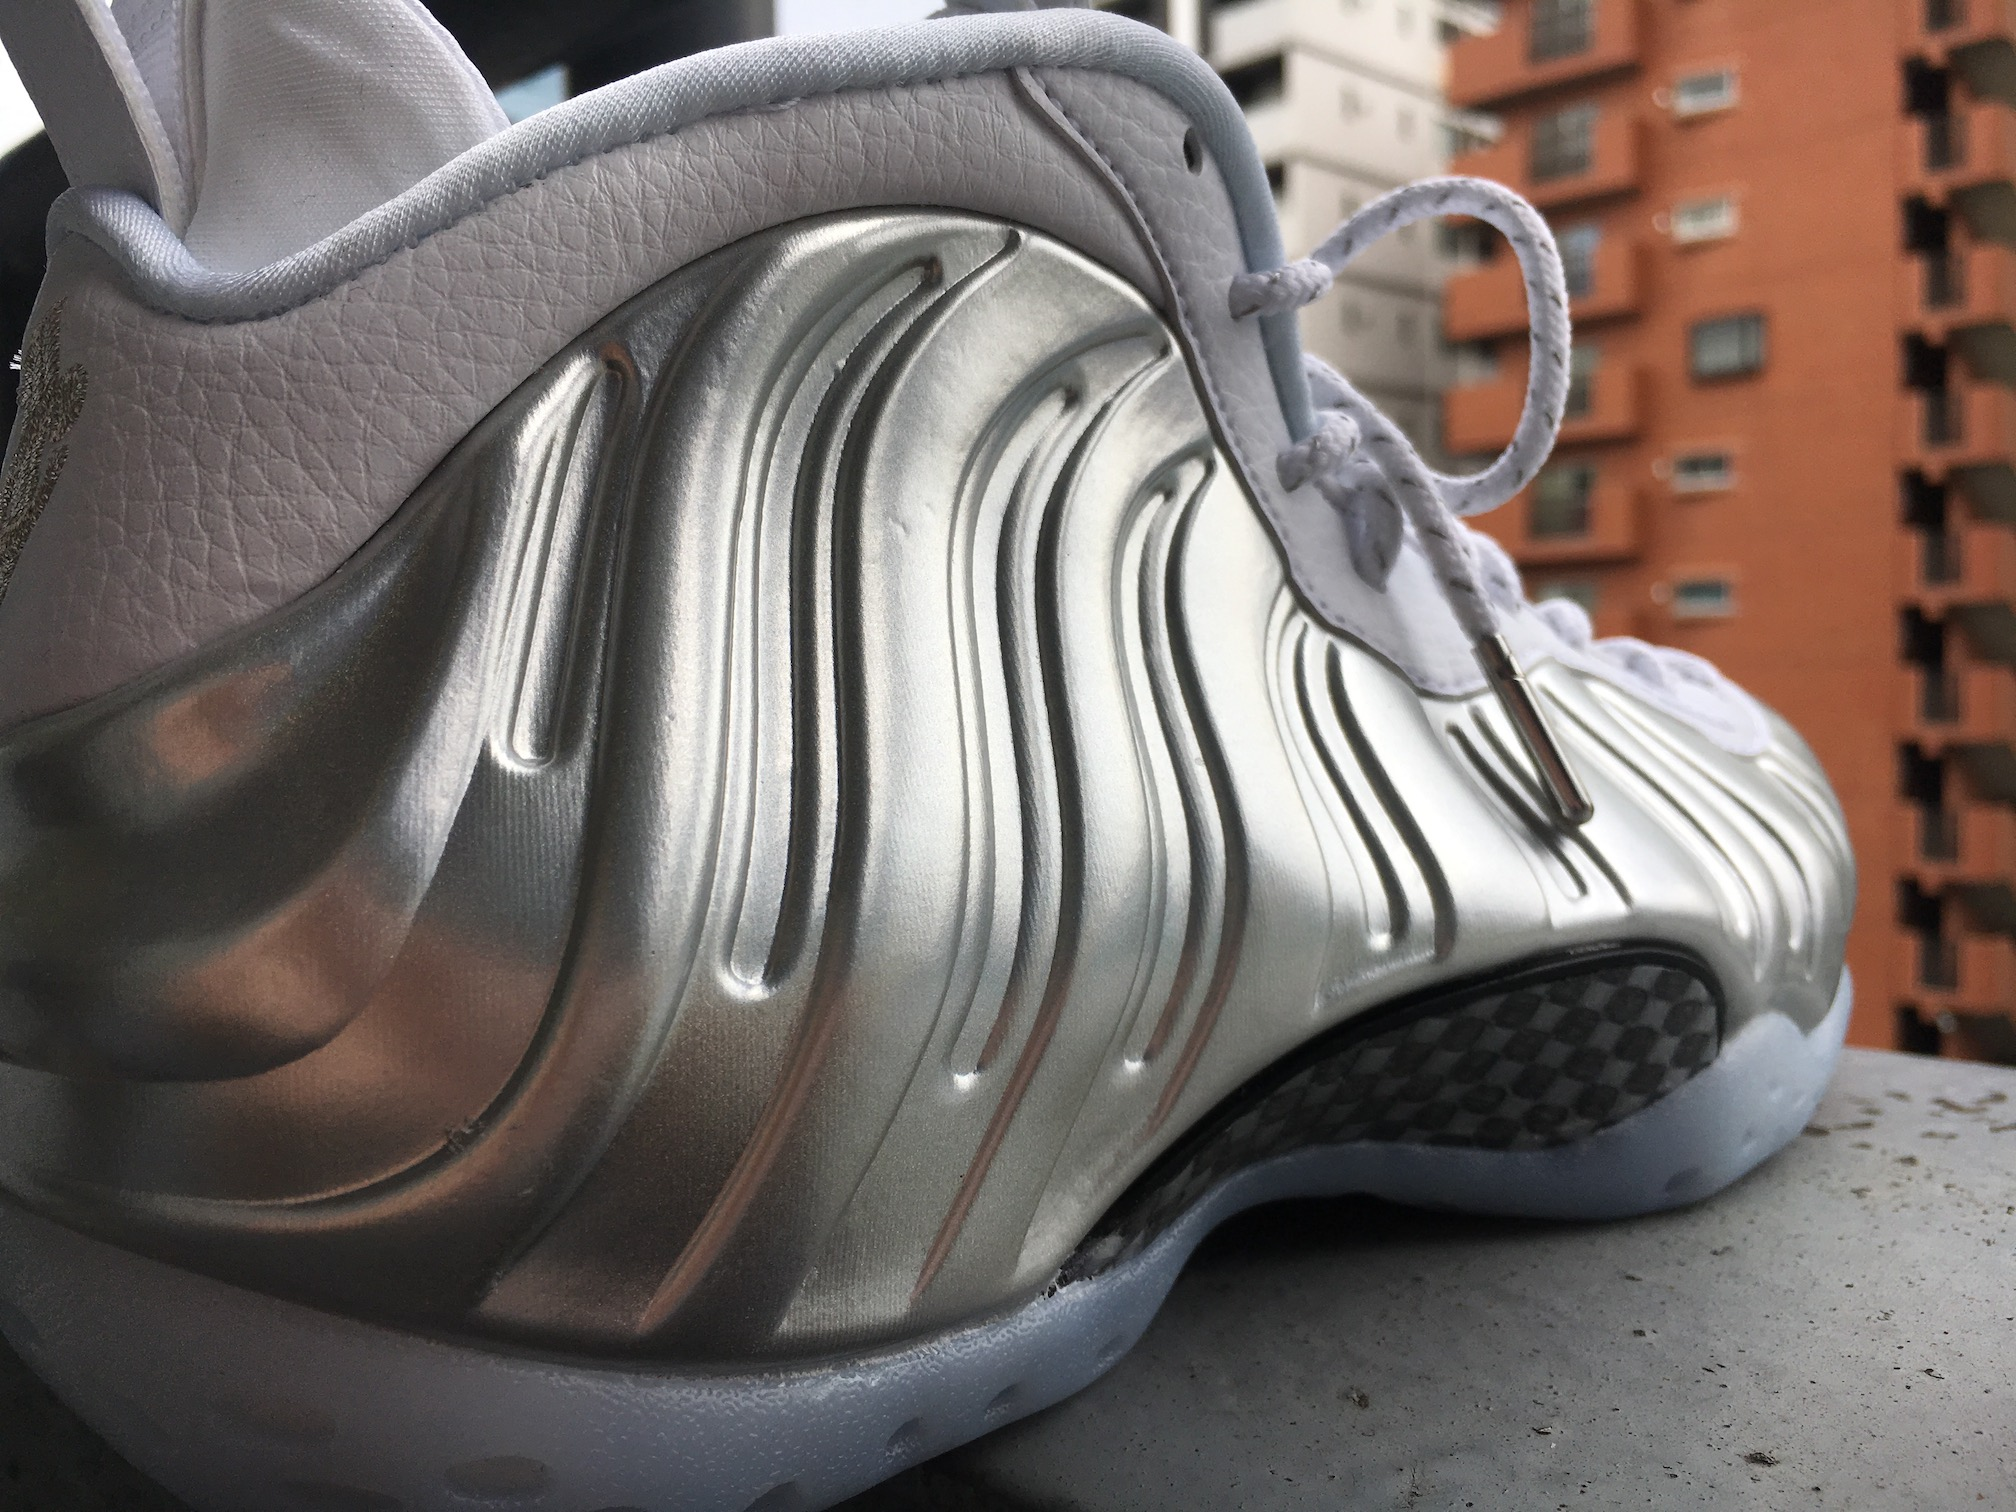 AIR FOAMPOSITE ONE CHROME エア フォームポジット ワン クローム